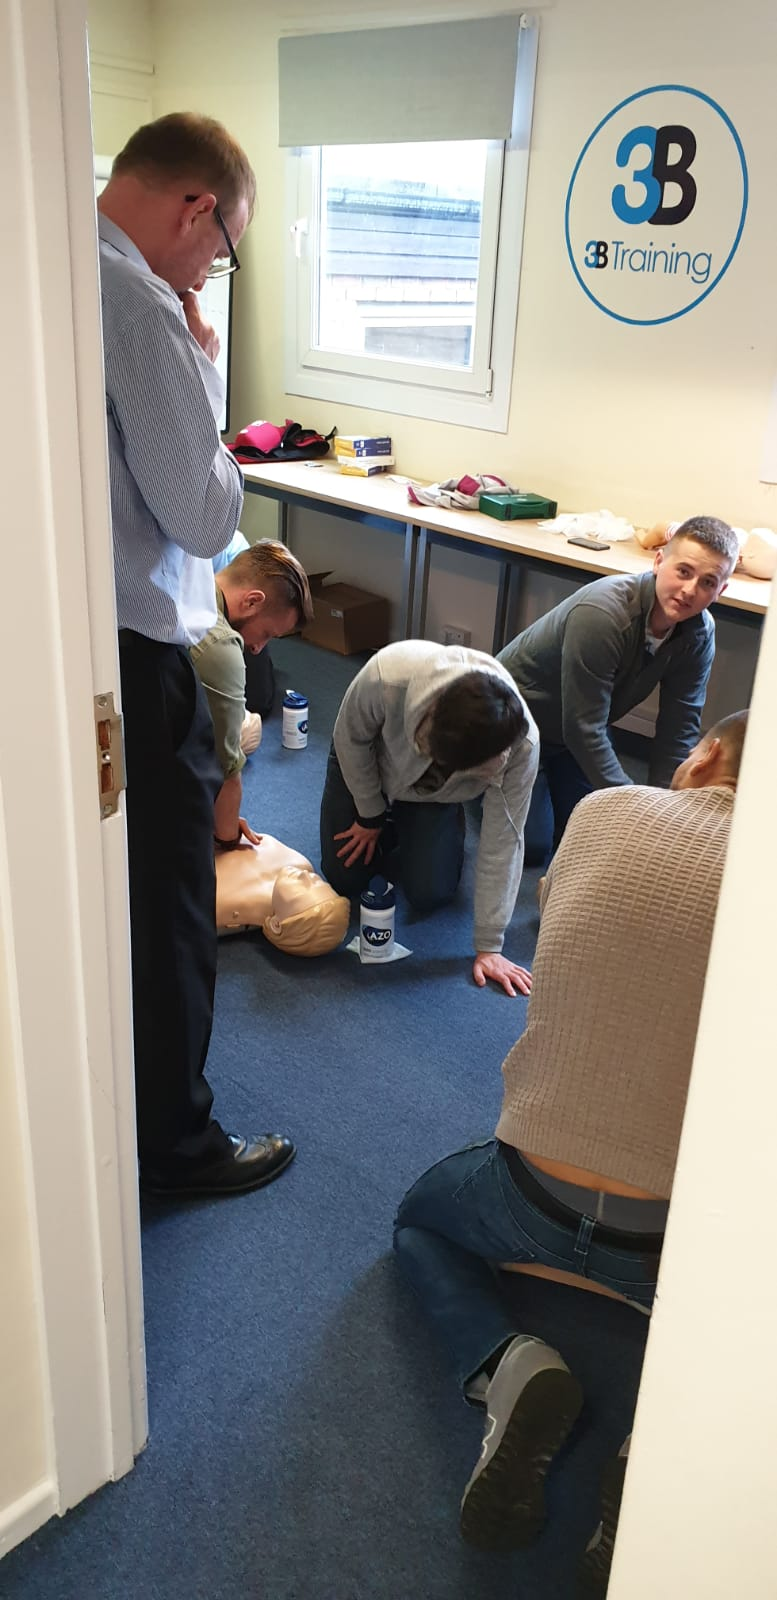 First Aid and Harness Training